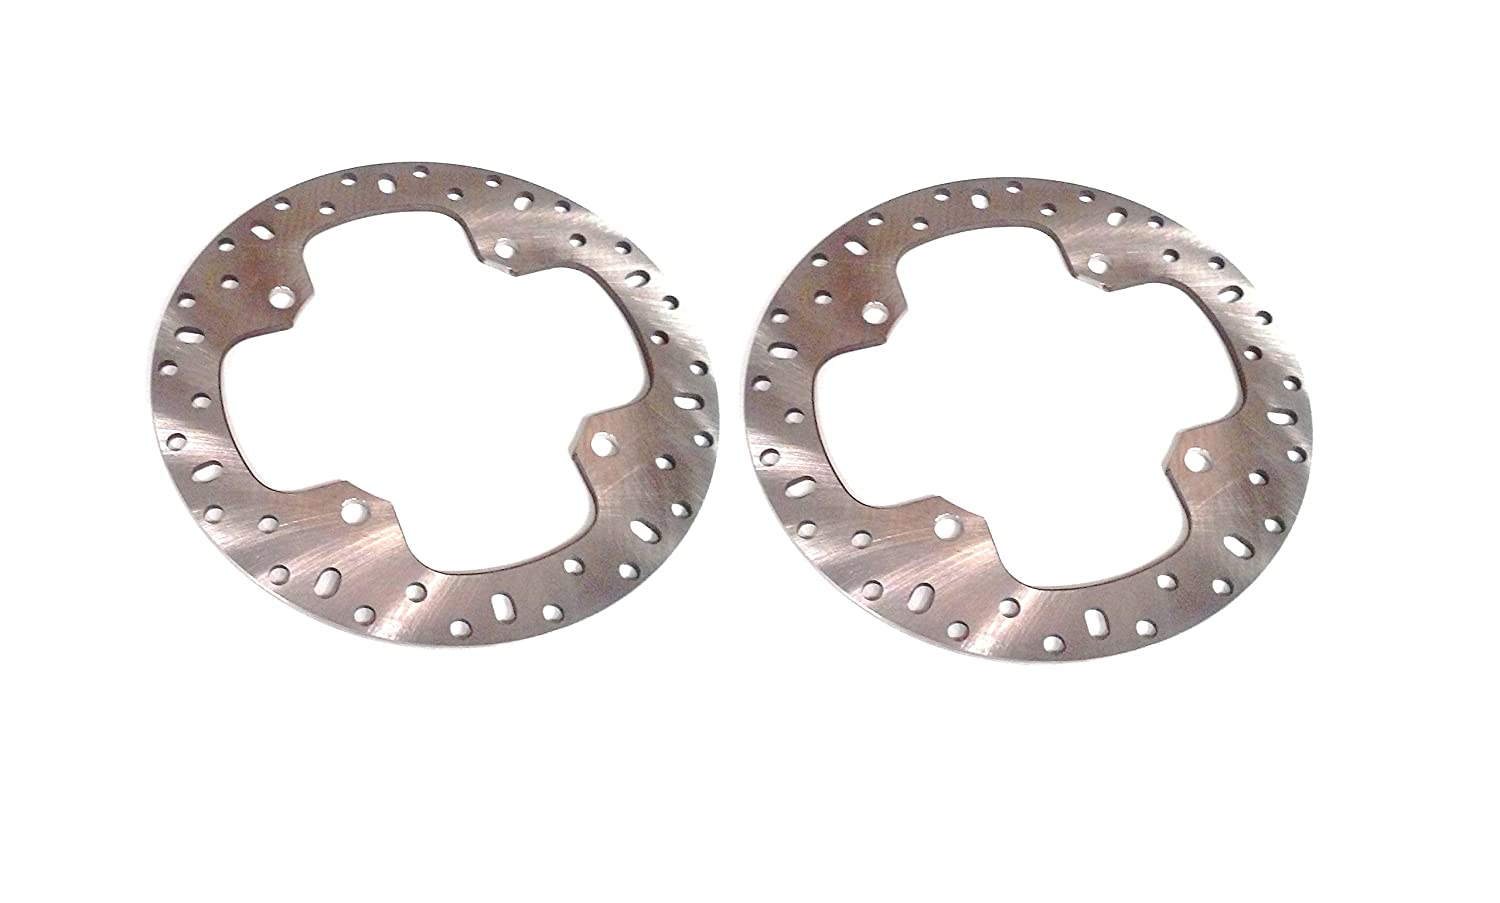 ATV Parts Connection BD-25 Polaris Scrambler 850 1000 Sportsman 550 850 1000 Pair of Front/Rear Brake Rotors ATVPC